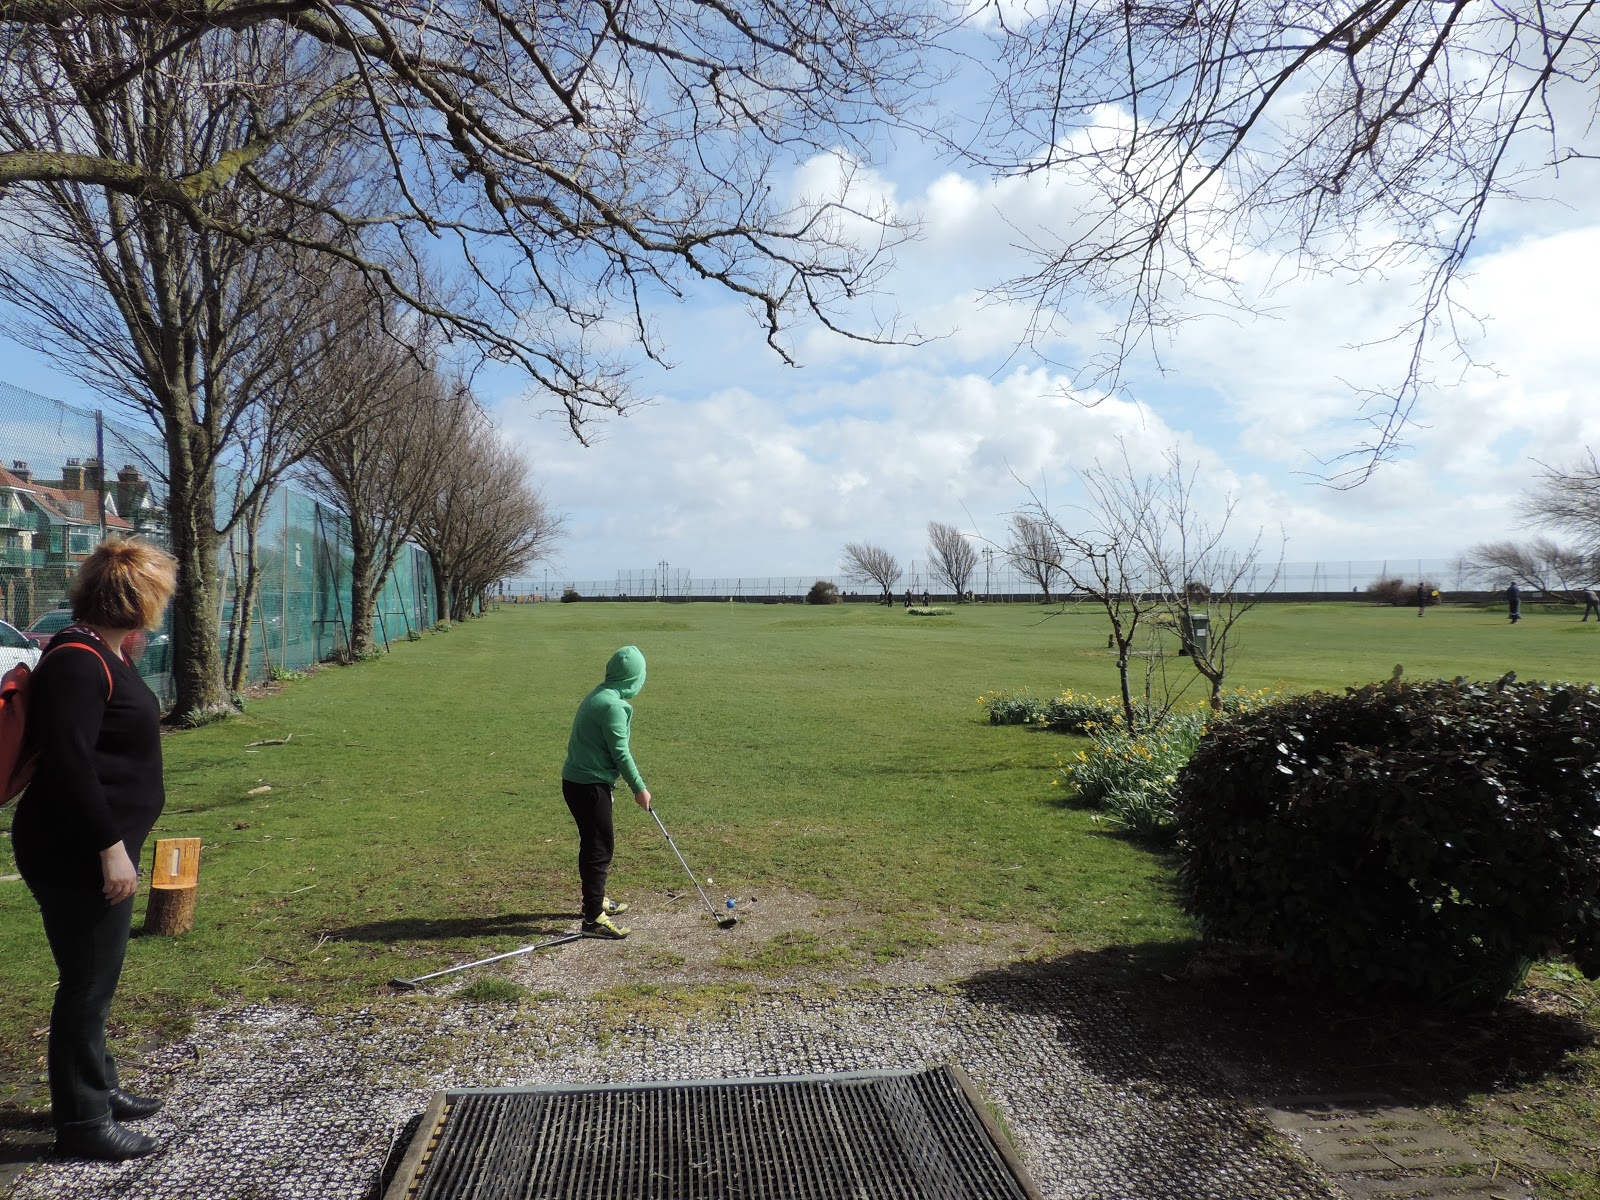 Southsea pitch and putt